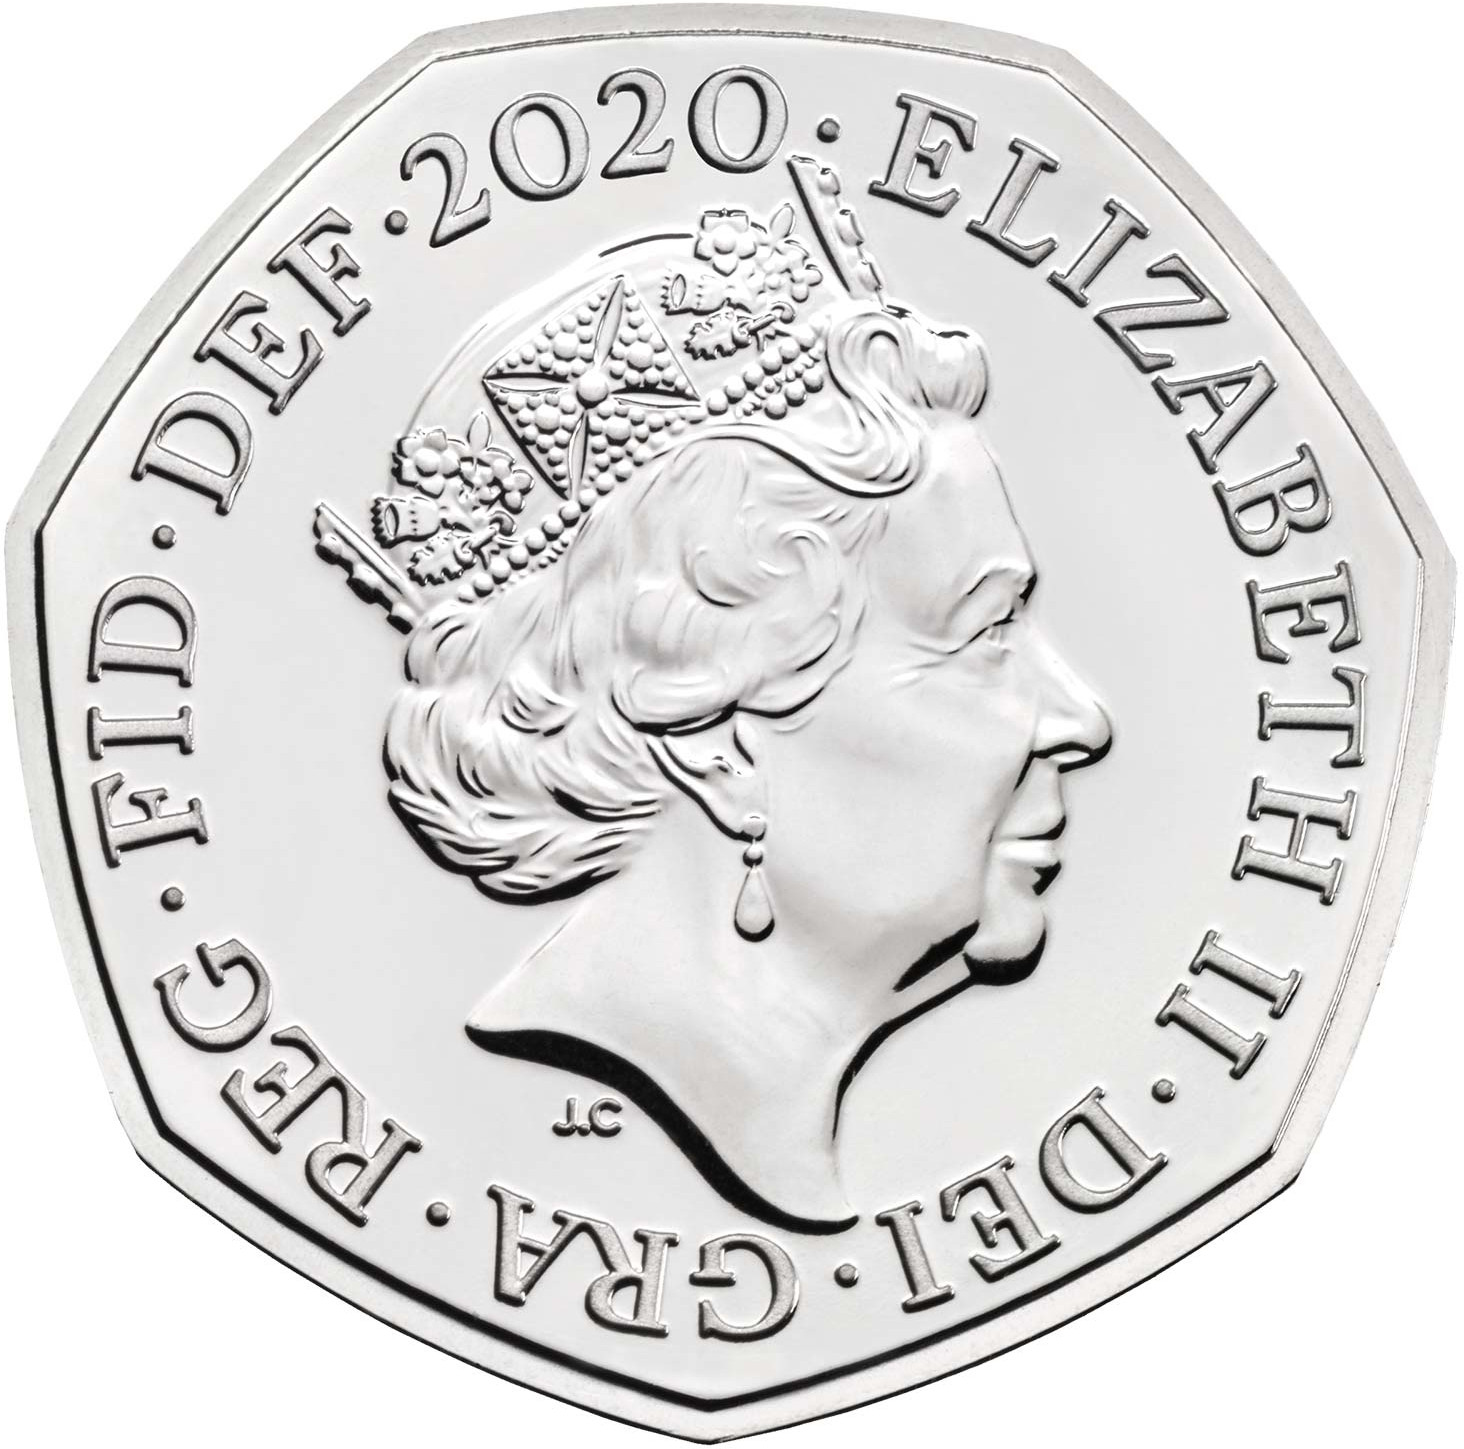 Fifty Pence 2020 Coin From United Kingdom Online Coin Club